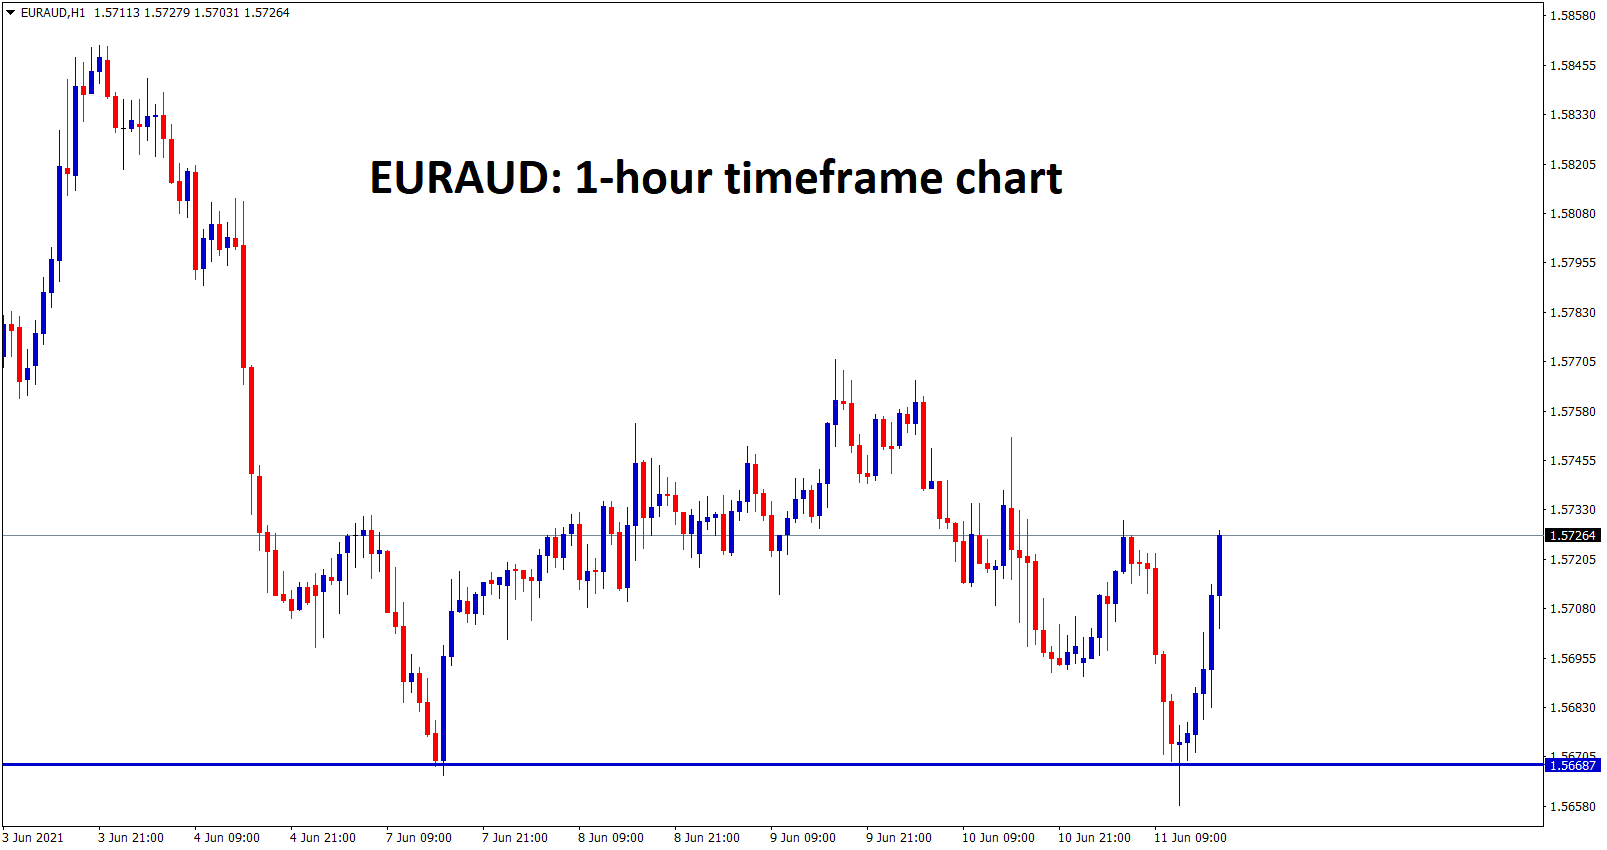 EURAUD formed a double bottom in the 1 hour timeframe chart